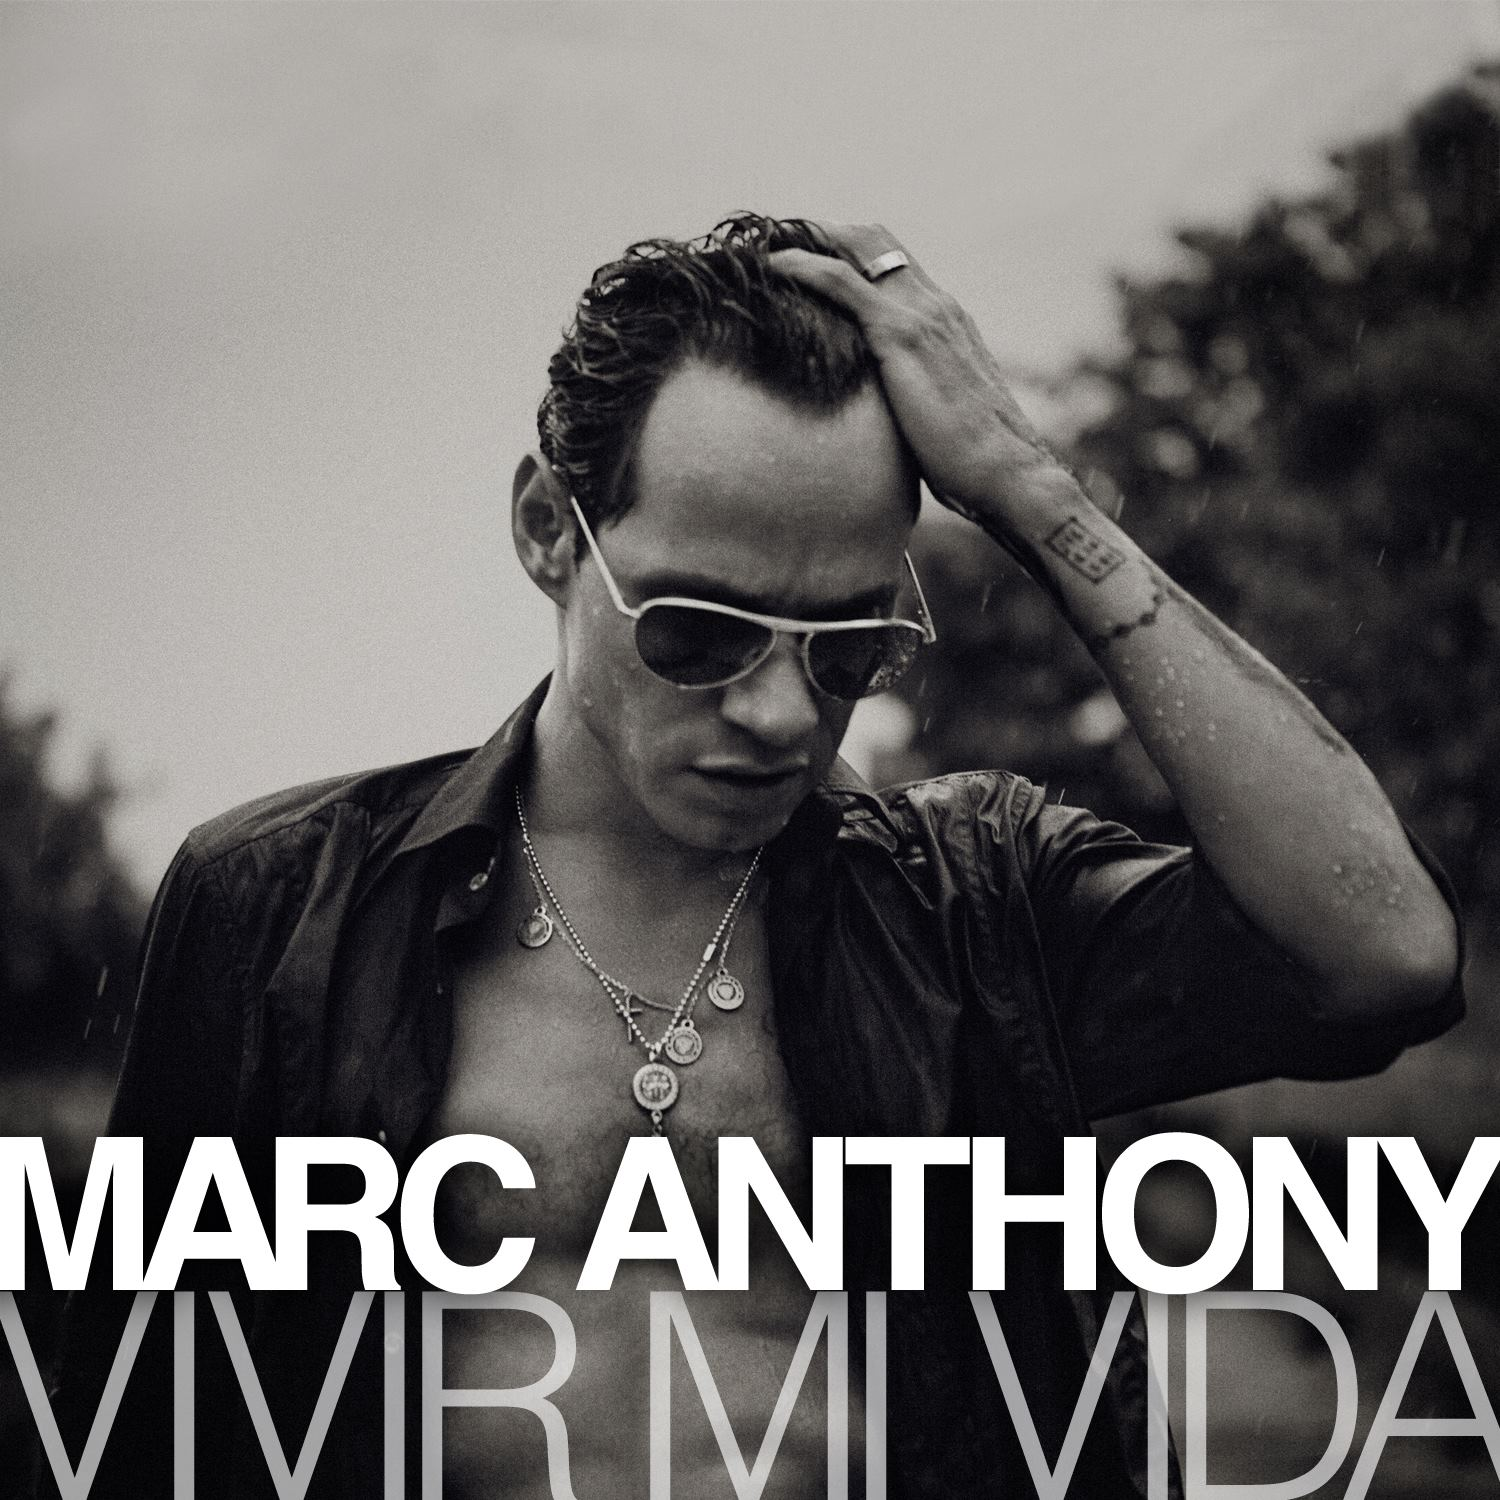 Vivir Mi Vida (Marc Anthony) custom arranged for very large ensemble   Includes choir, band, marching band and jazz band